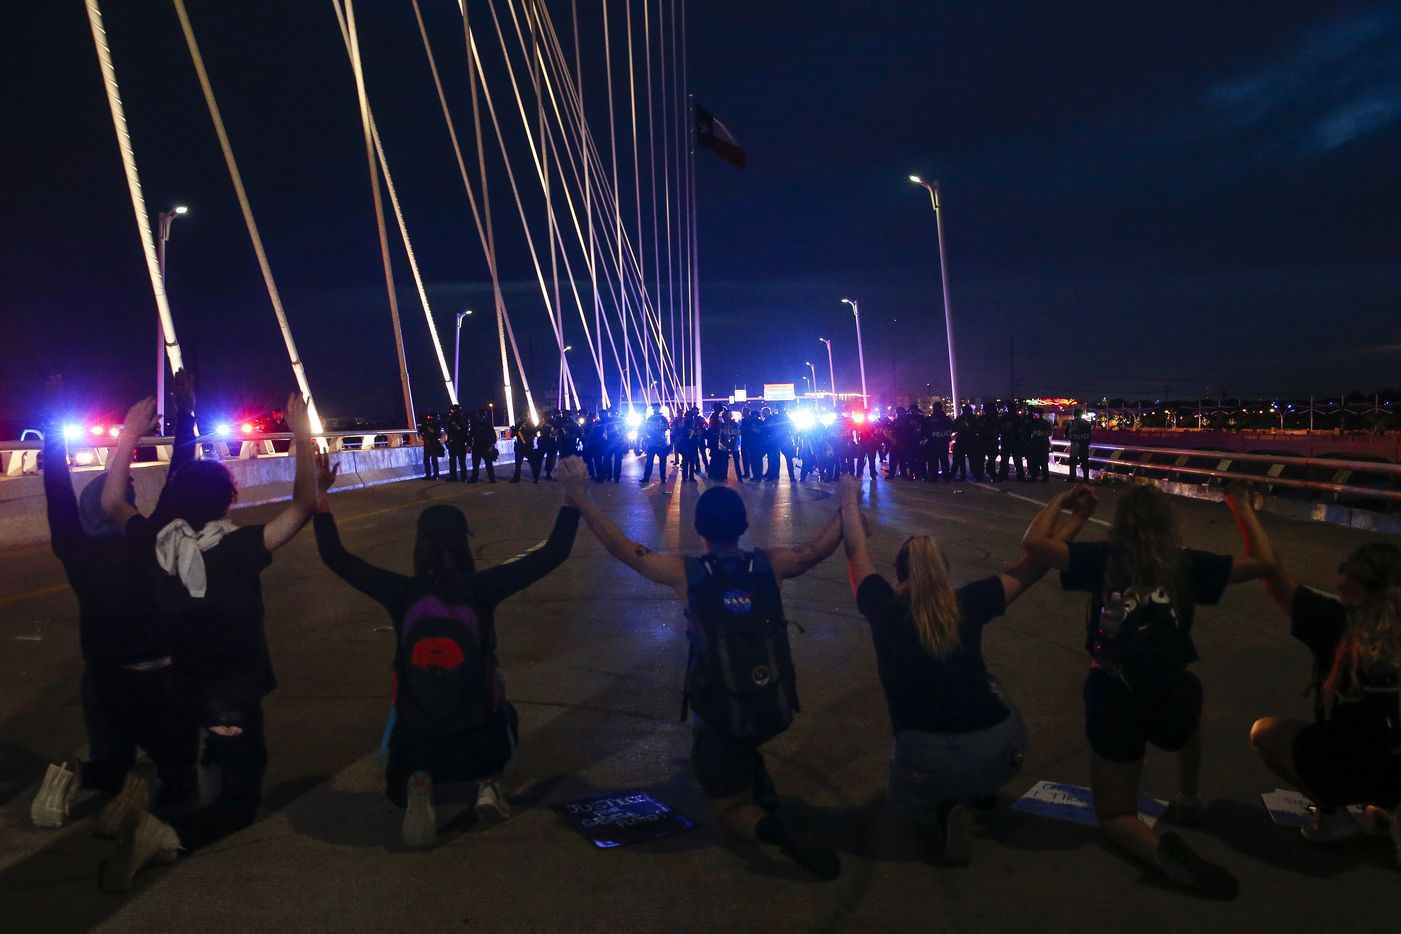 Protesters march onto the Margaret Hunt Hill Bridge as the demonstrate against police brutality on Monday, June 1, 2020, in Dallas. Later on, the hundreds of protesters were surrounded and detained by police.